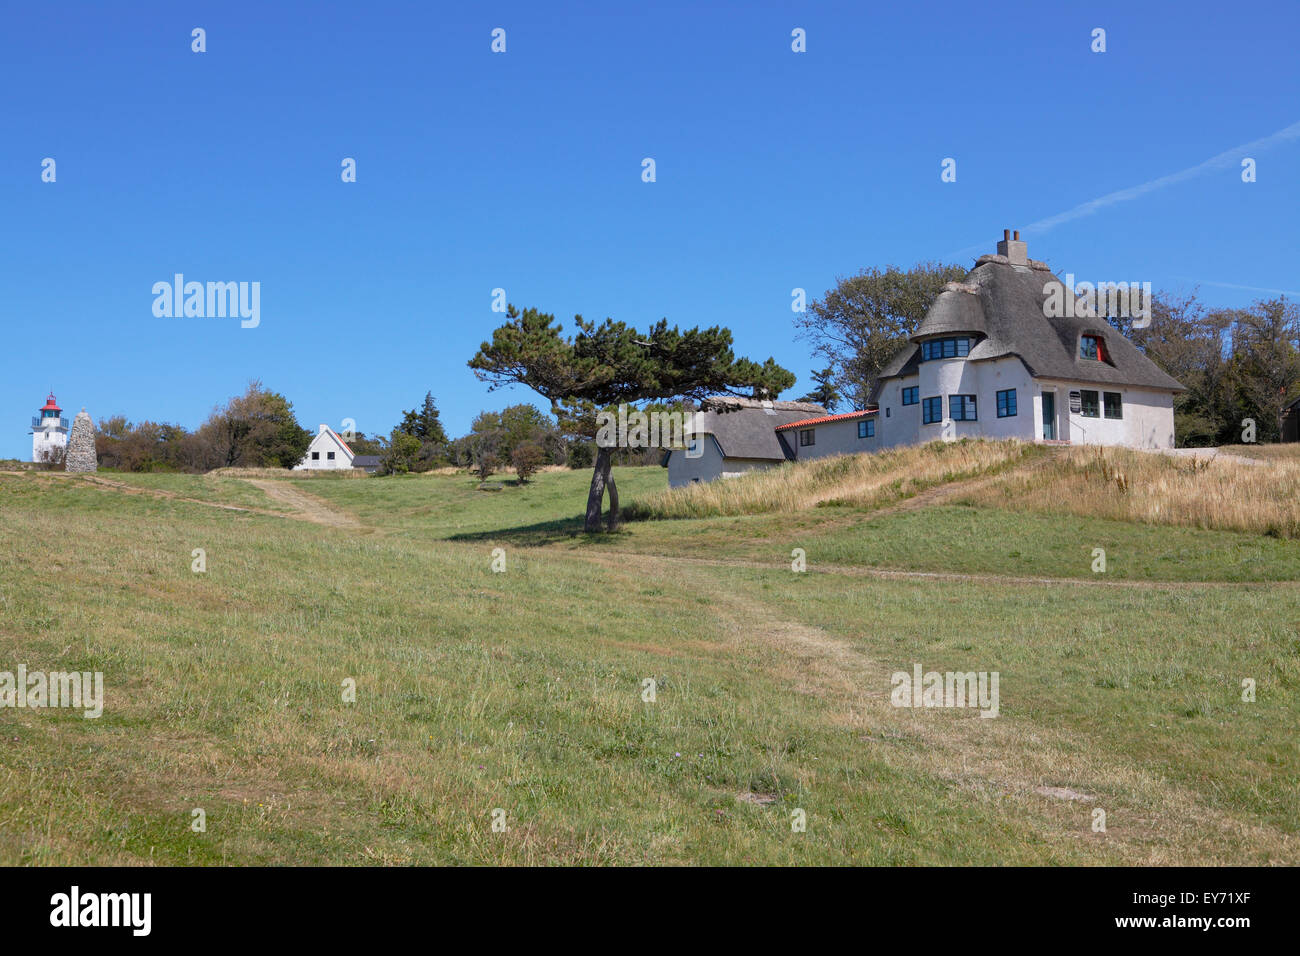 The home of the famous Danish polar explorer and anthropologist, Knud Rasmussen, on the moraine cliff Spodsbjerg Stock Photo